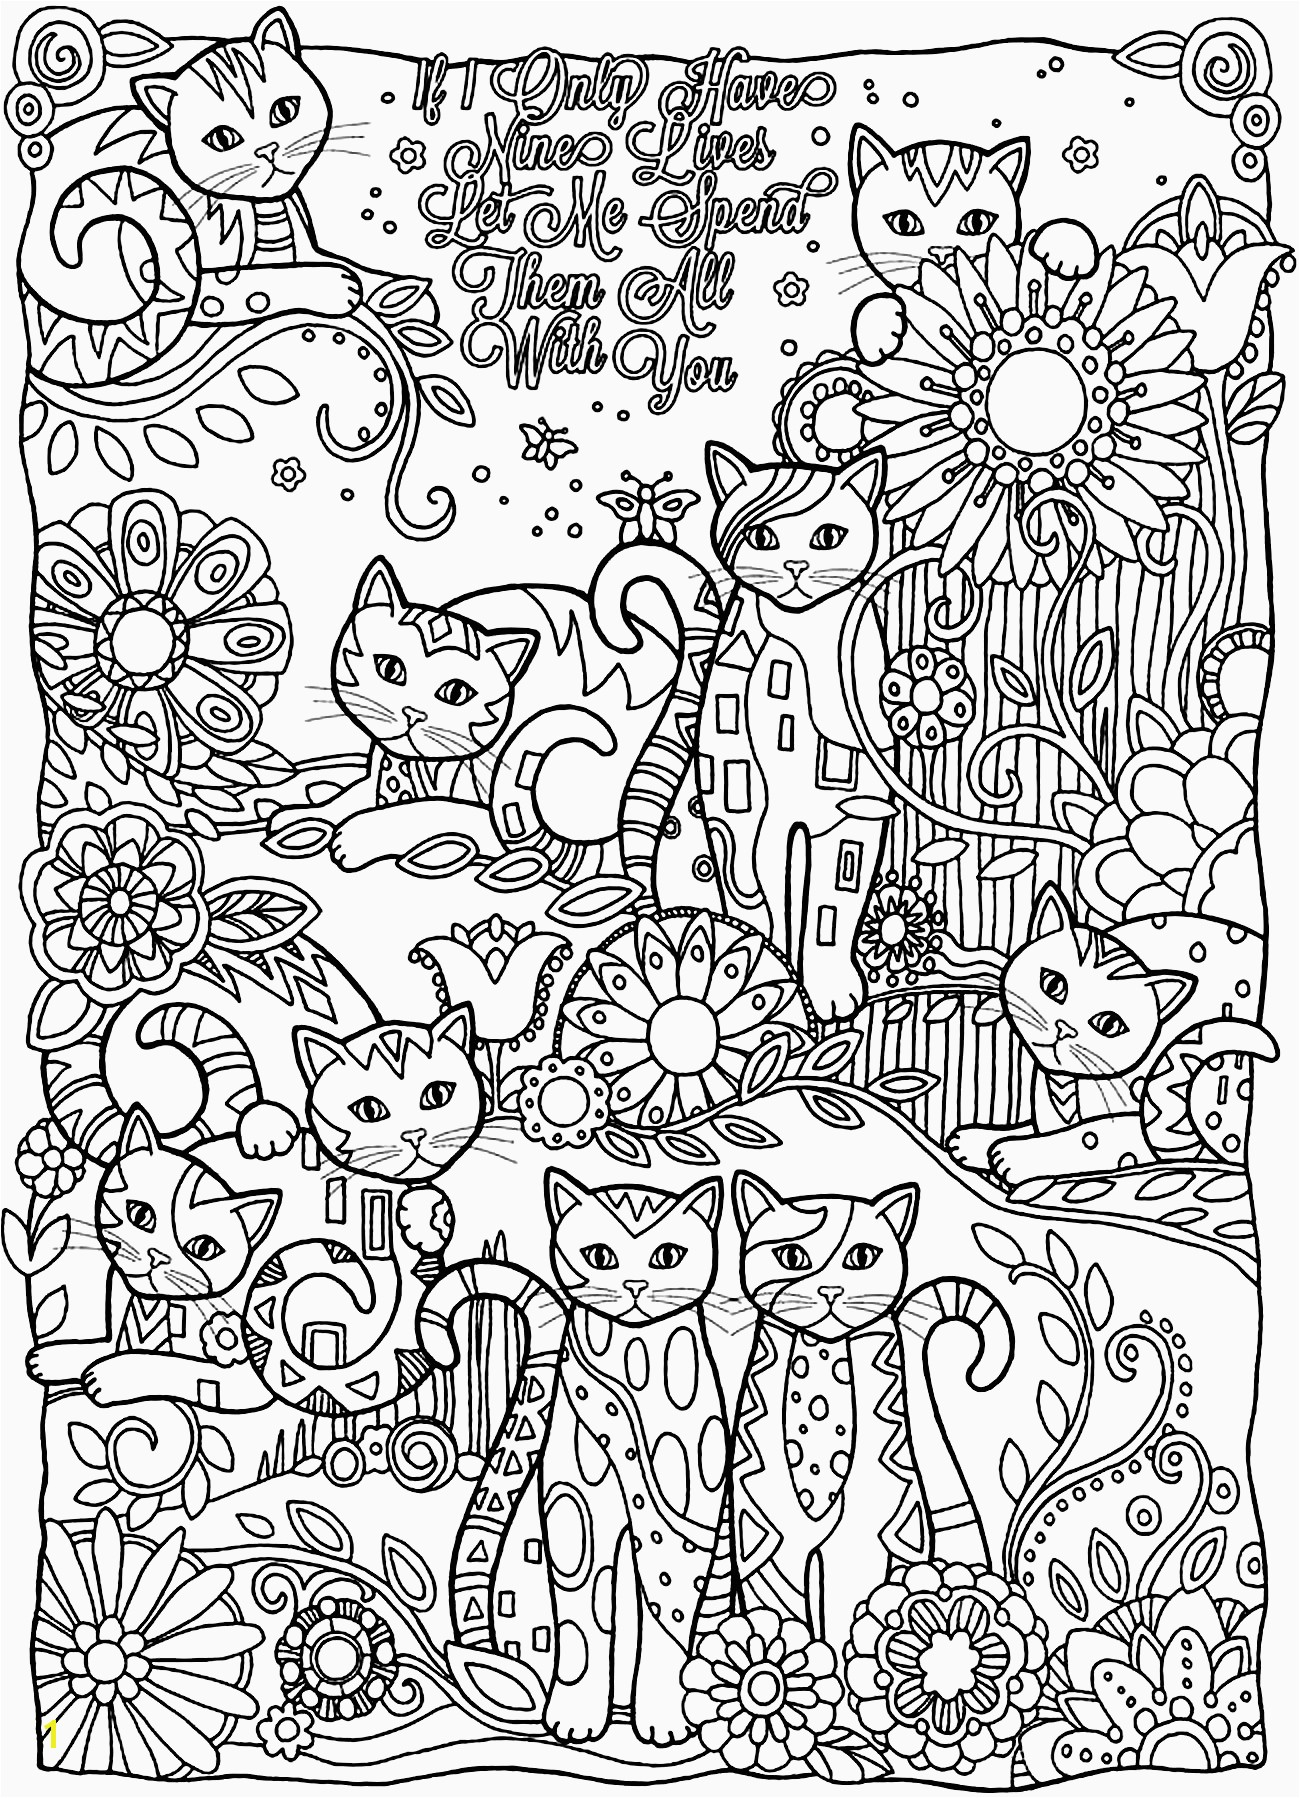 Free Printable Coloring Pages Adults ly Fresh Christmas Coloring Pages Printable Luxury Cool Od Dog Coloring